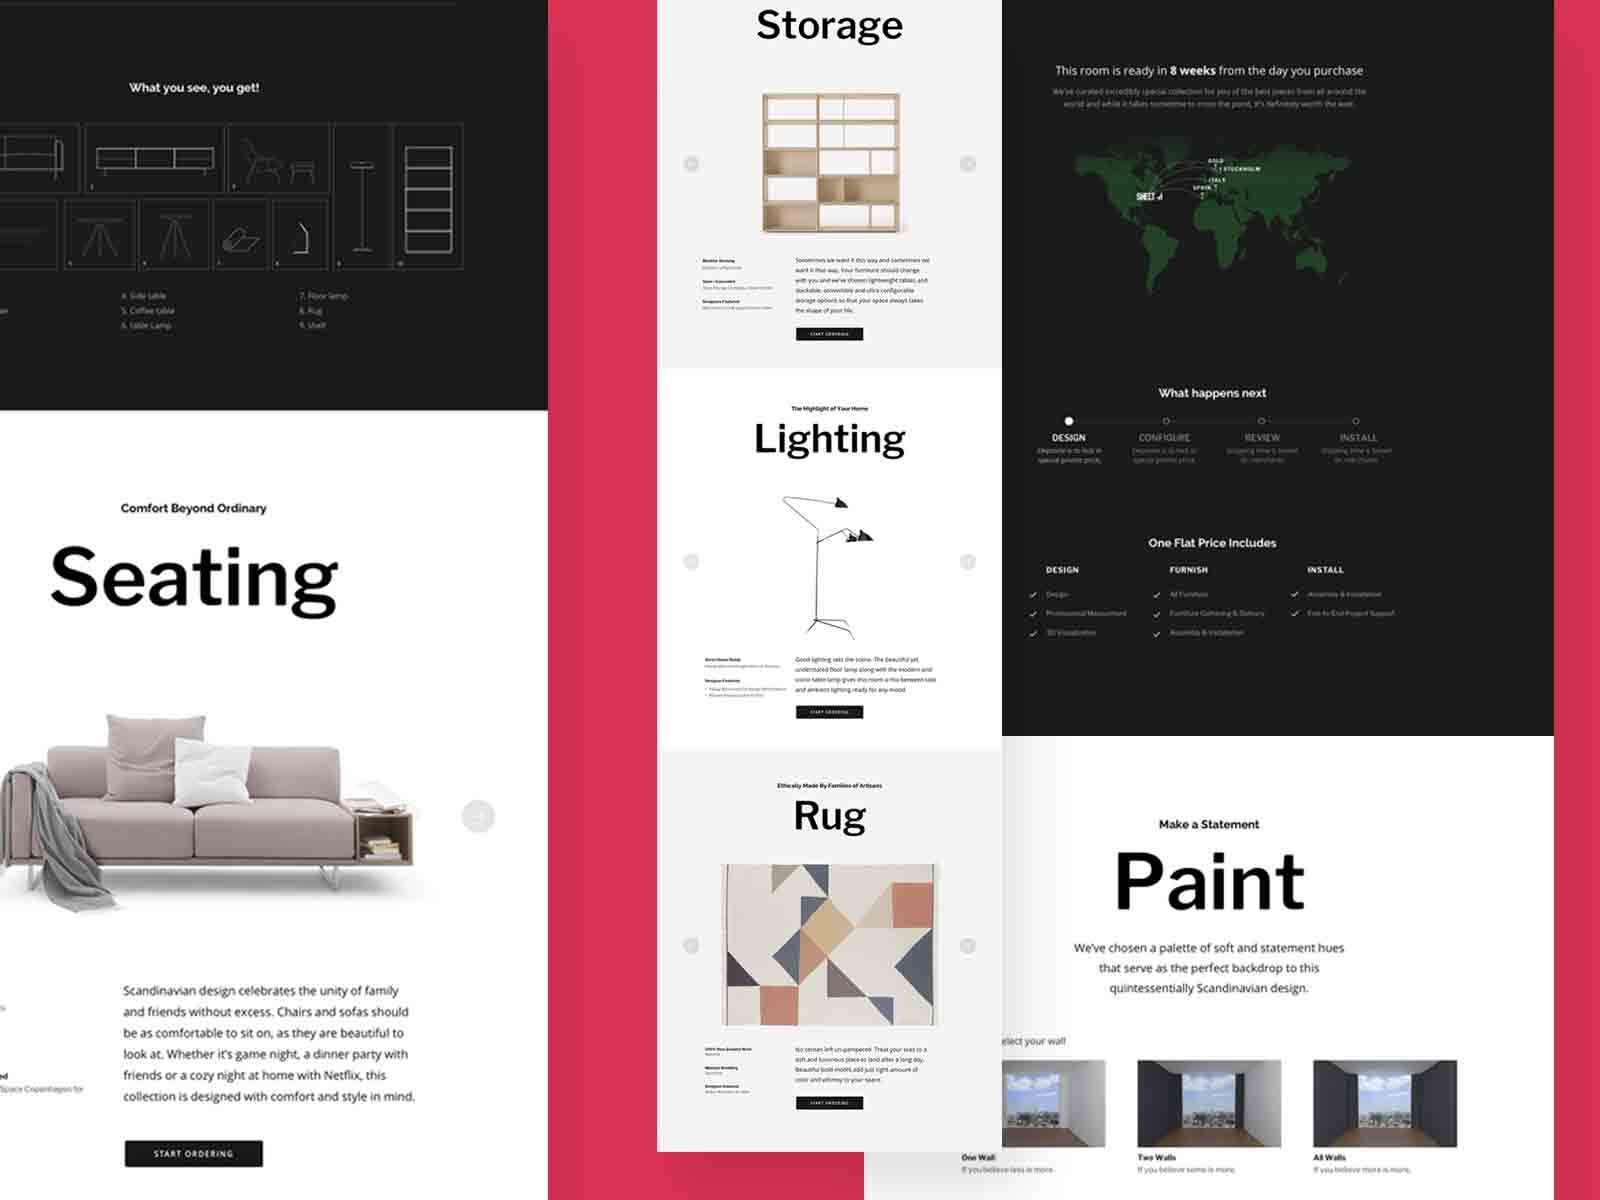 Sheltah interior decorating website by John Yue on Dribbble